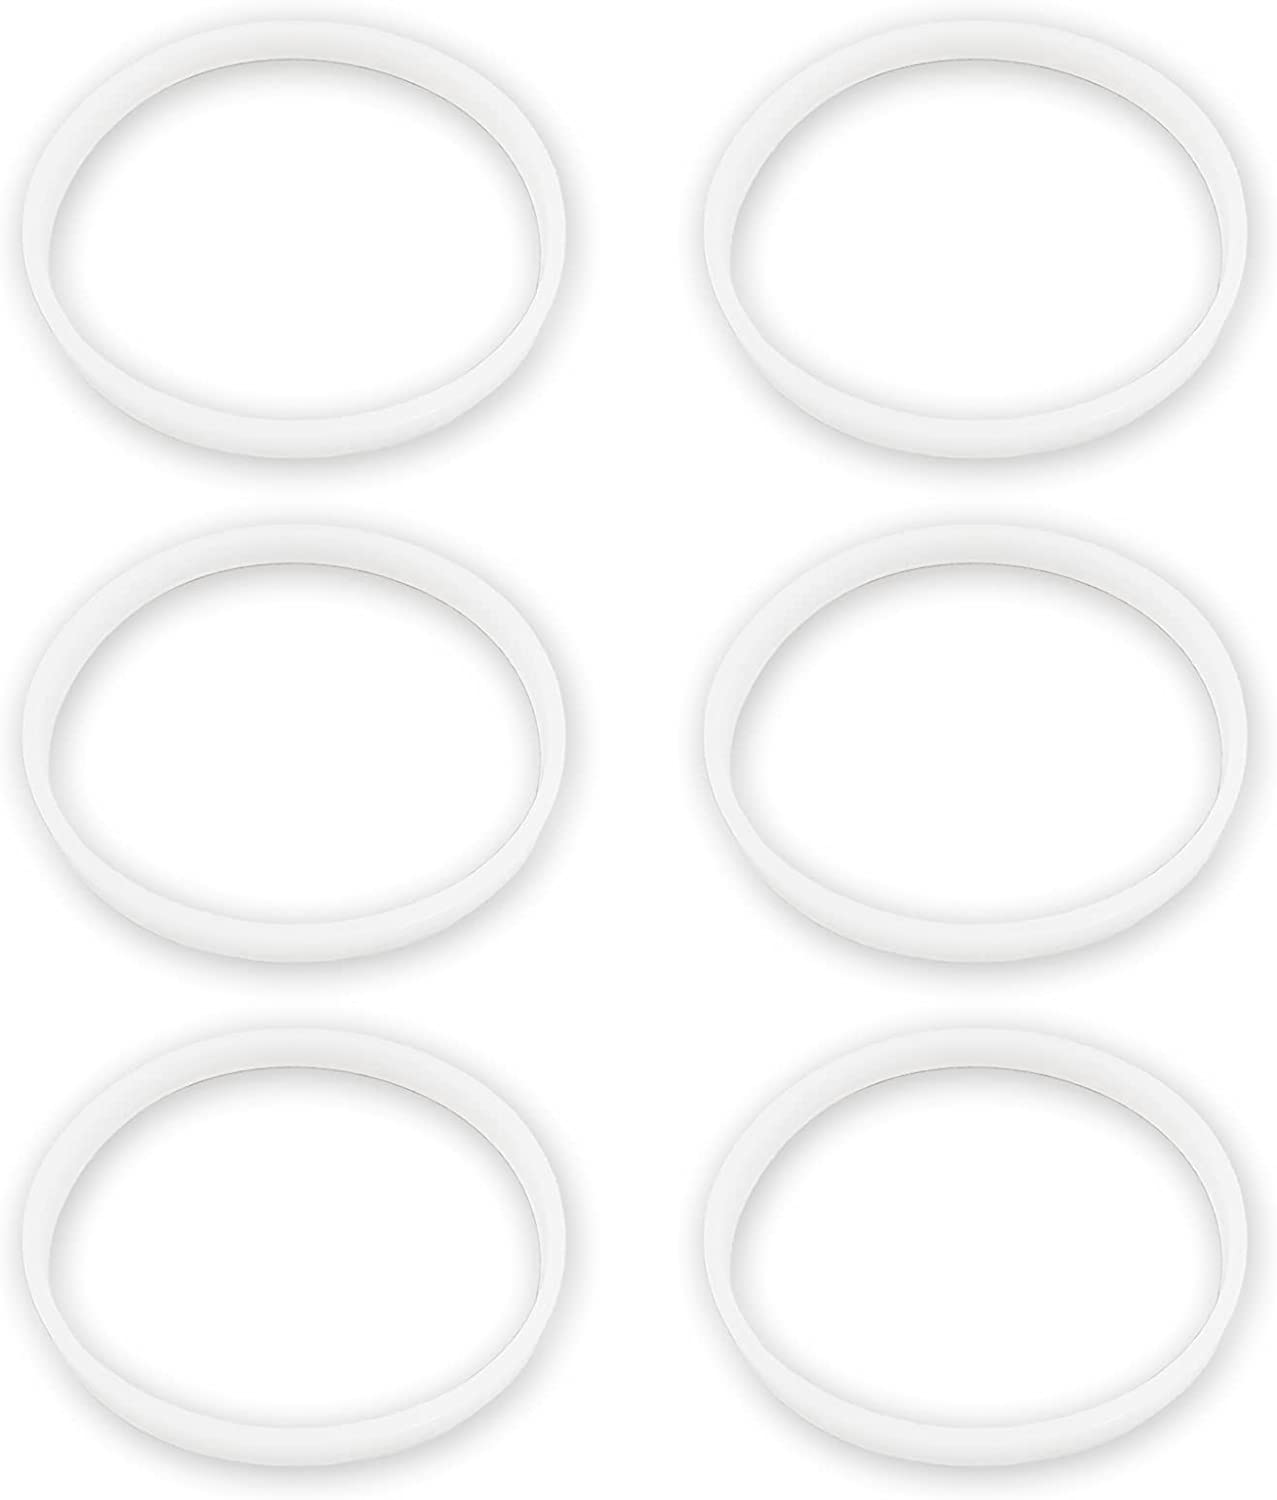 6 Pack Rubber Gaskets Replacement Seal White O-Ring For Nutri Ninja Blender Replacement Ninja Auto-iQ Pro Extractor CT680 BL451 BL480D BL681A BL682 (3.94 inch Gaskets)